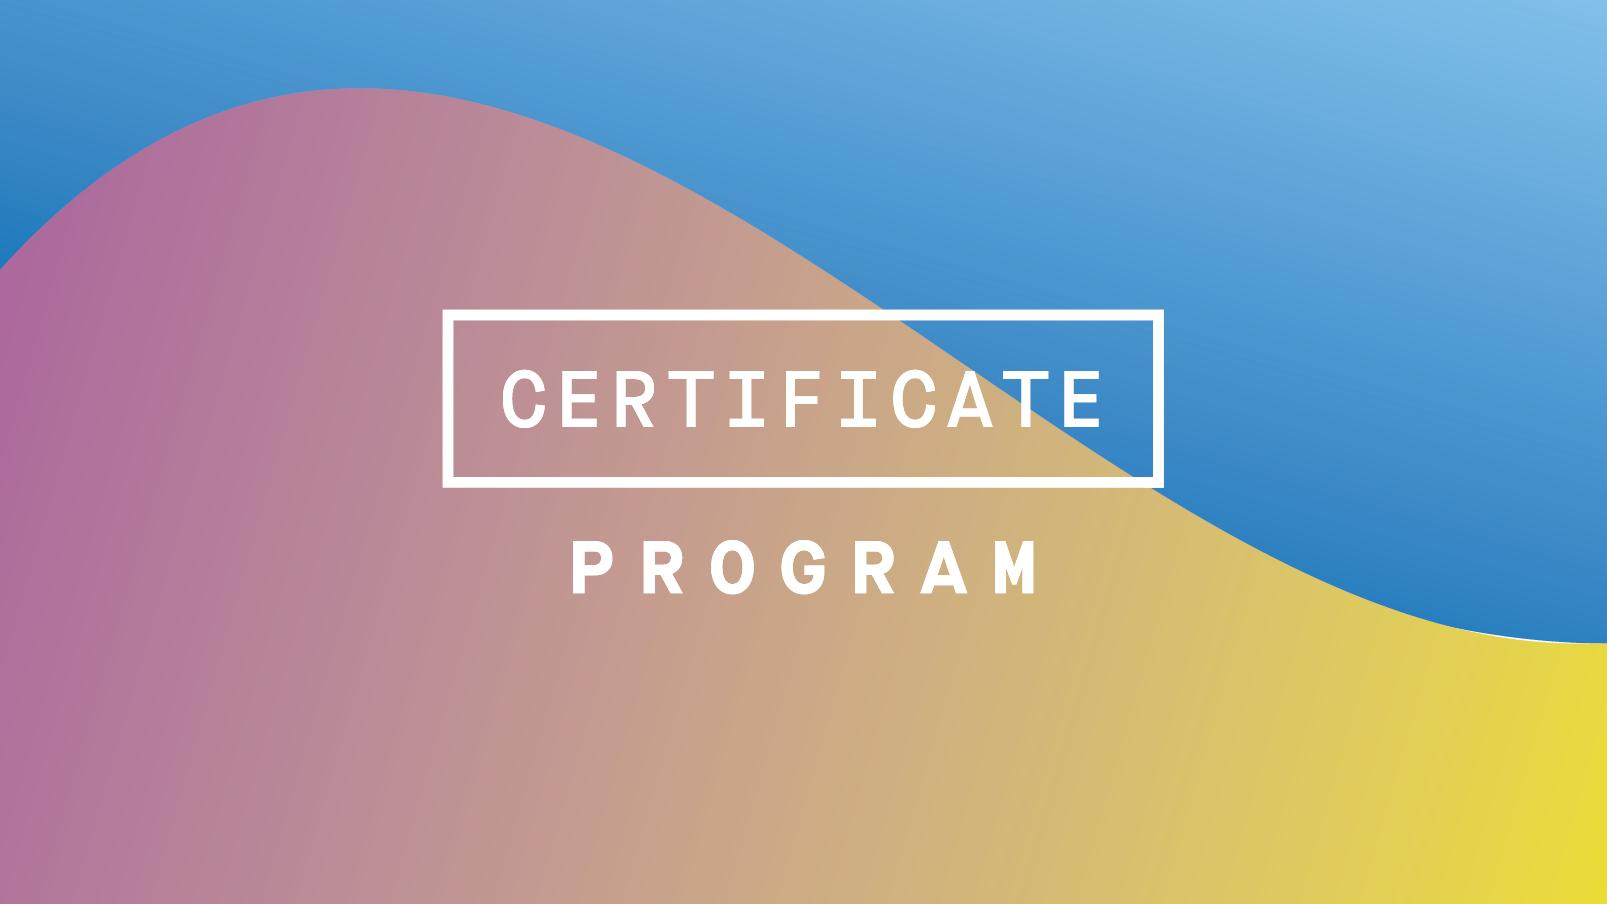 Creativity & Leadership Certificate Program